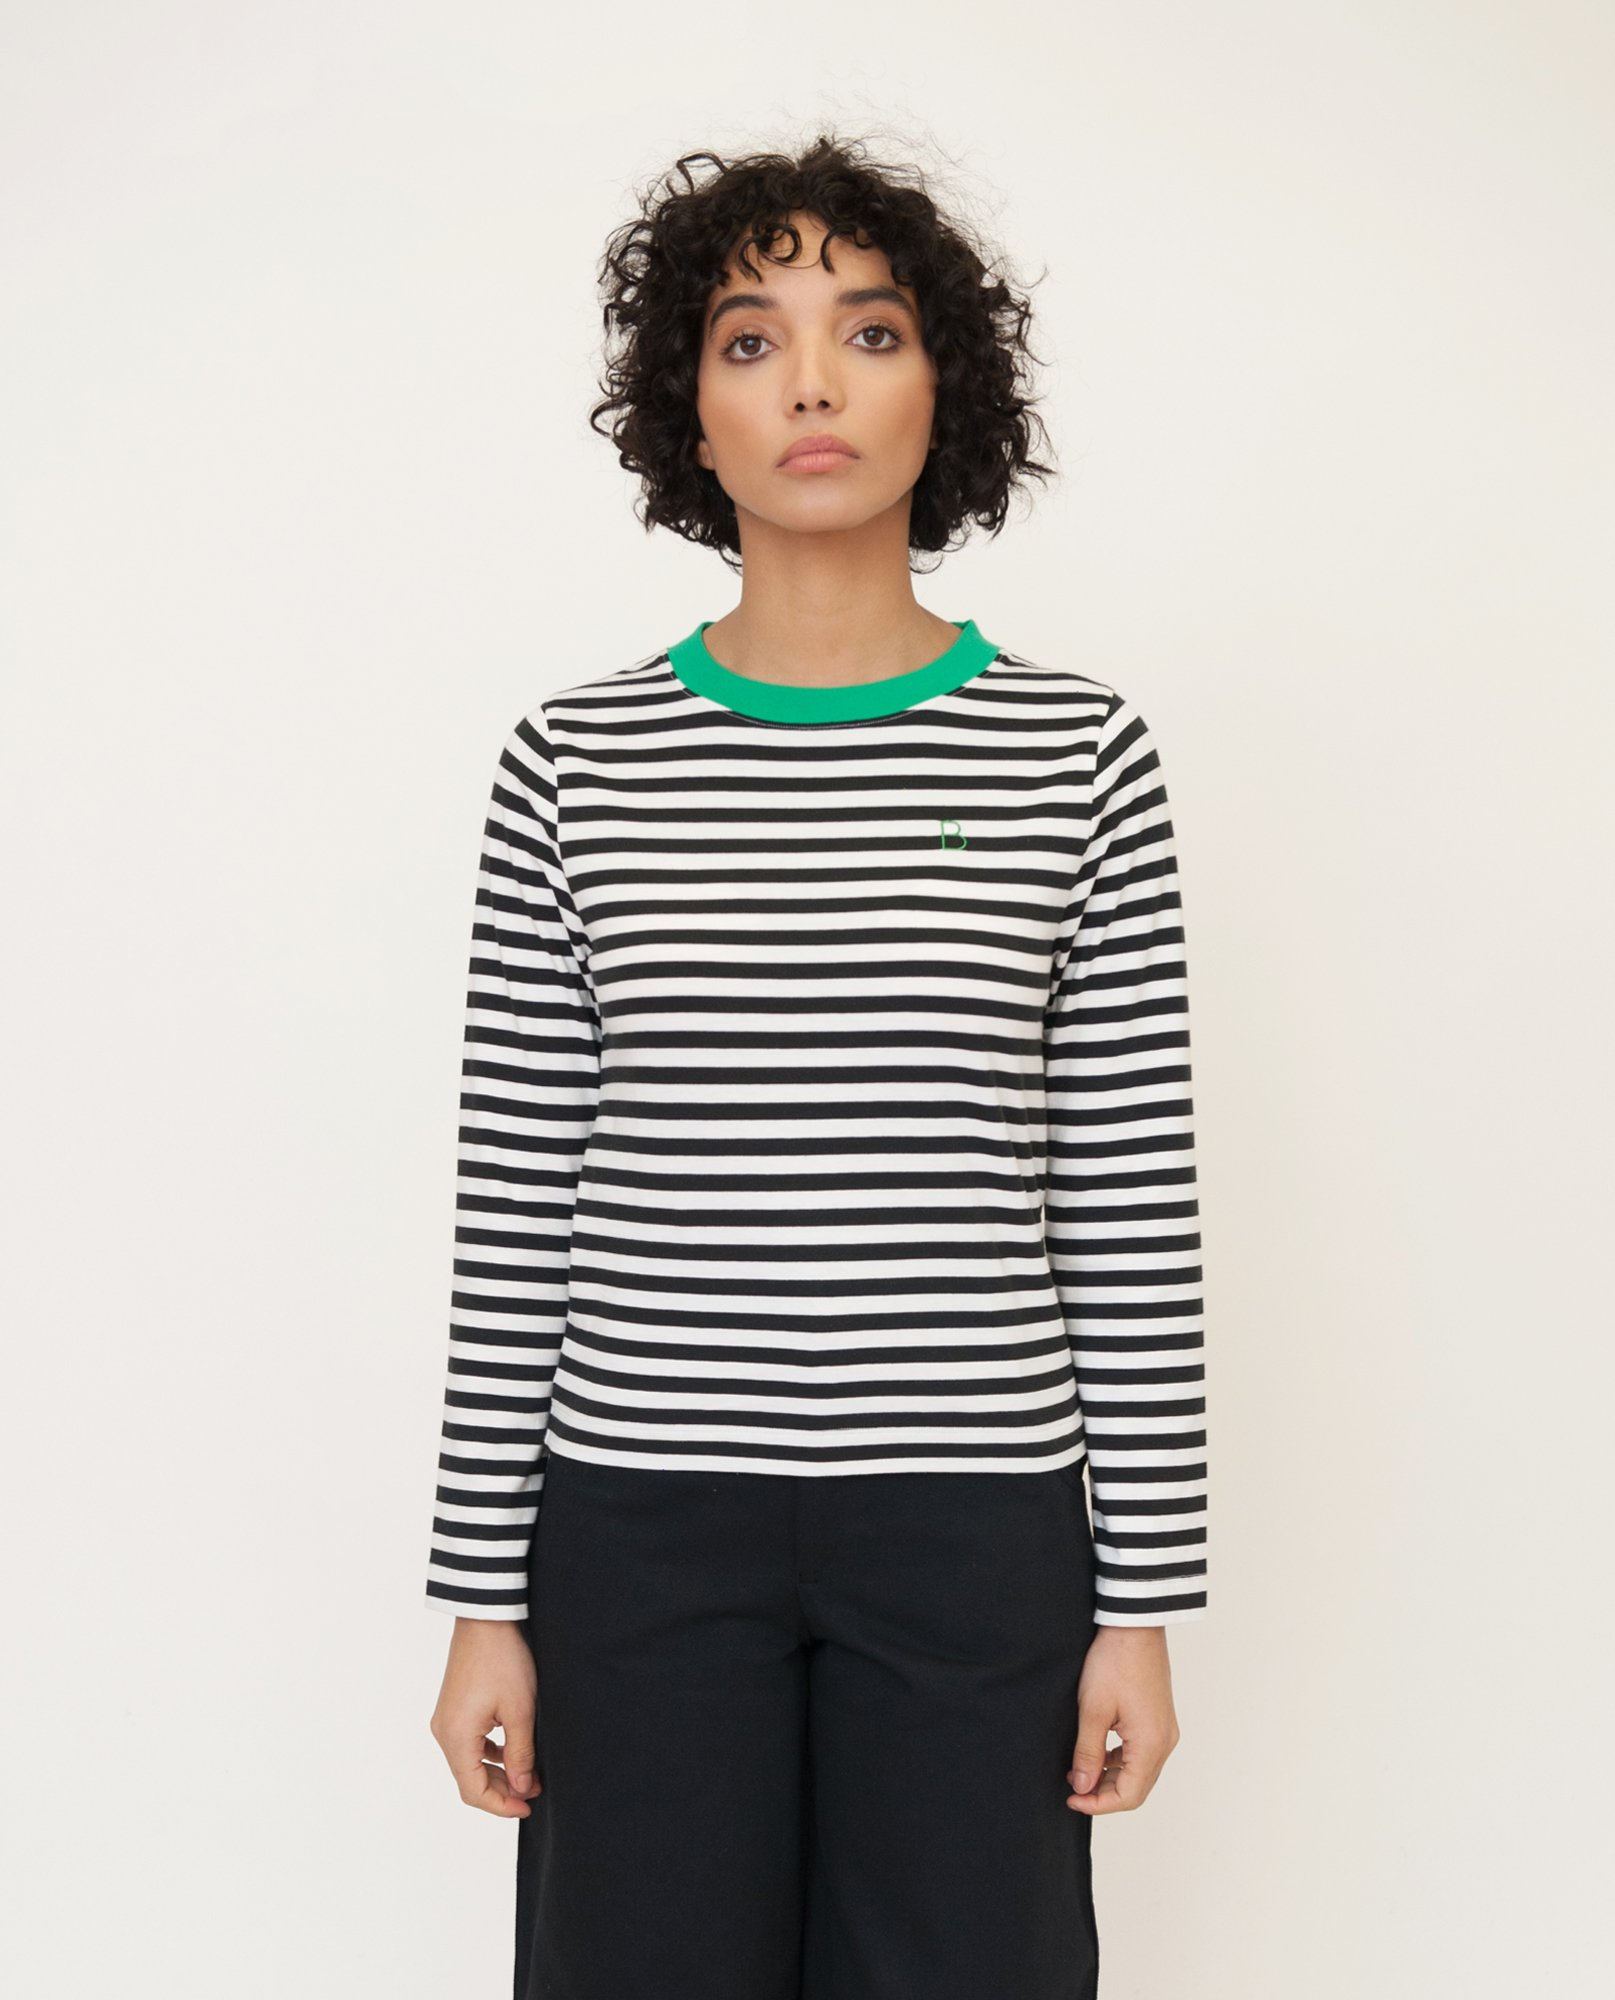 SHOBA Organic Cotton Top In Black And Green from Beaumont Organic